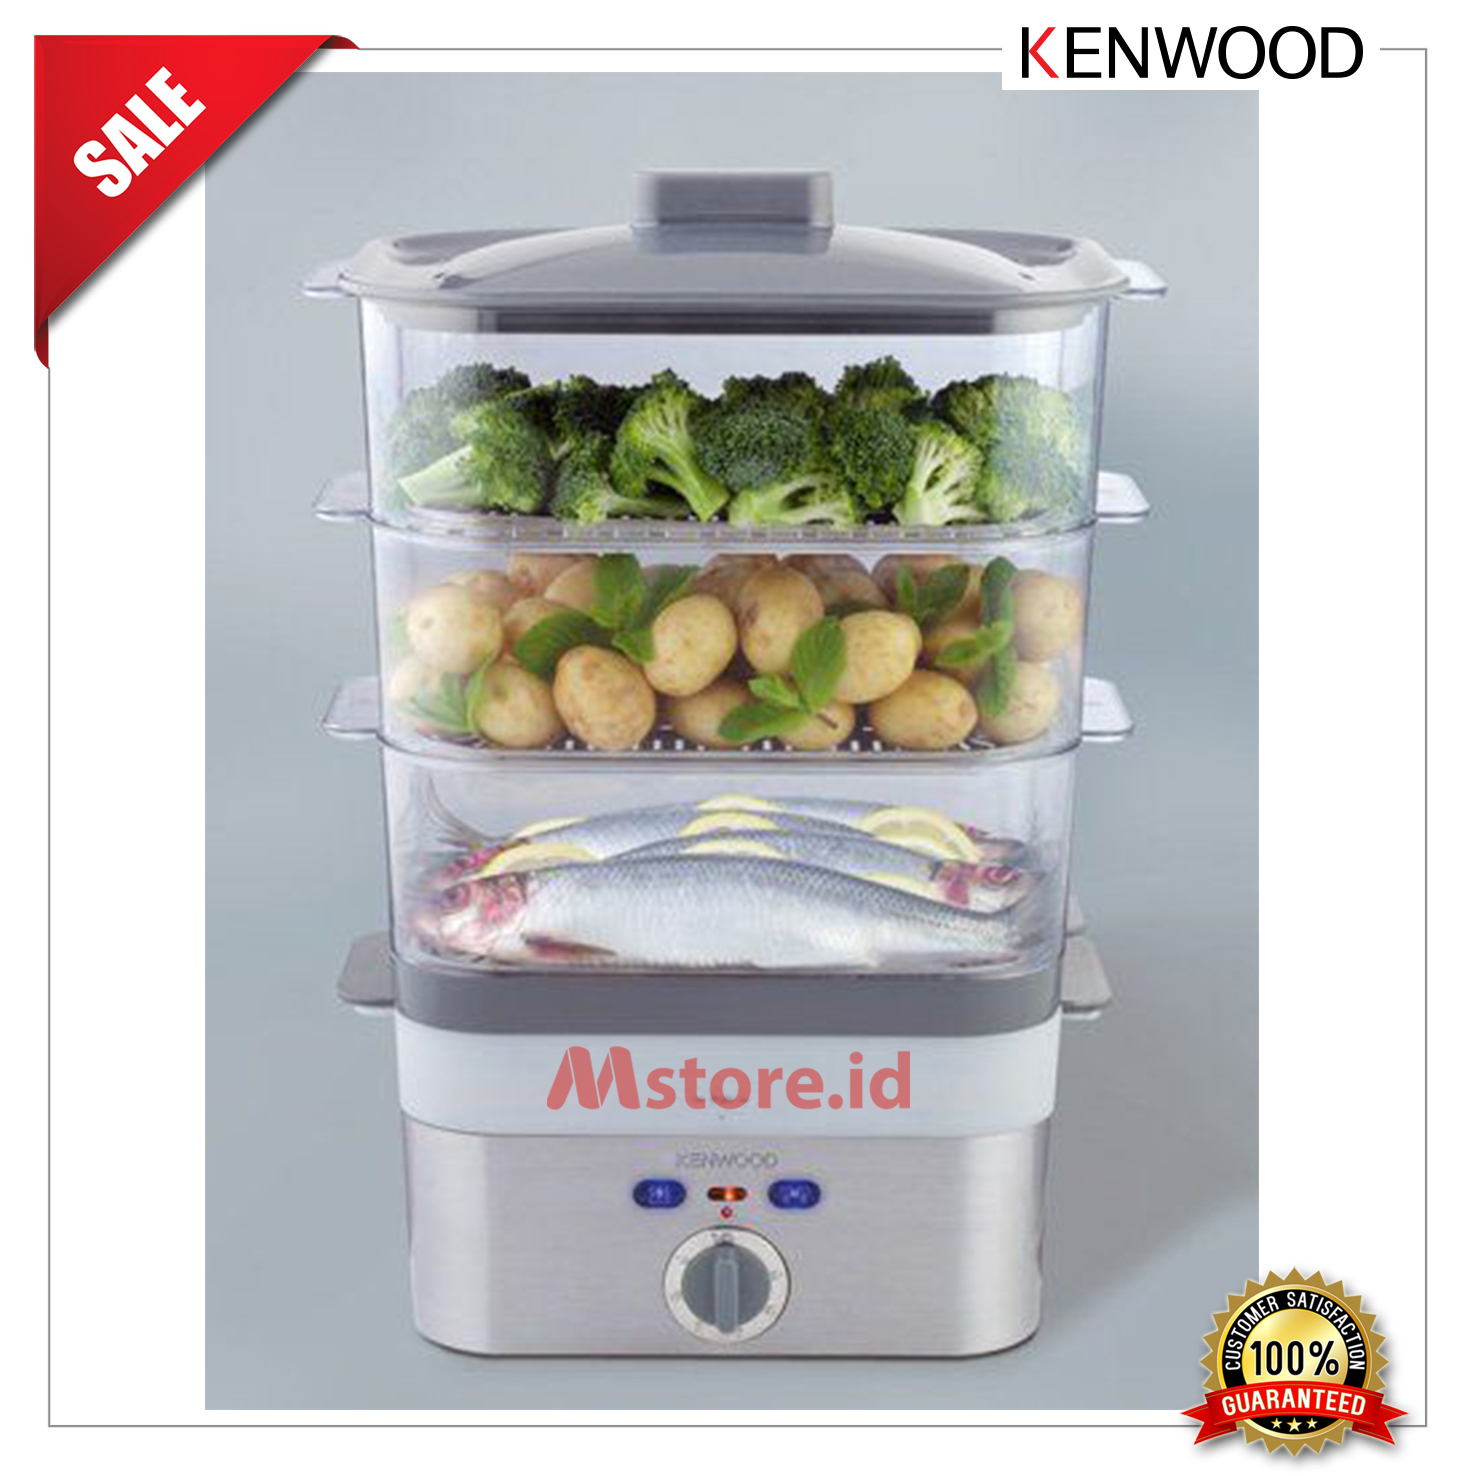 KENWOOD_FS620_FOOD STEAMER_mstore id_multimayaka_4